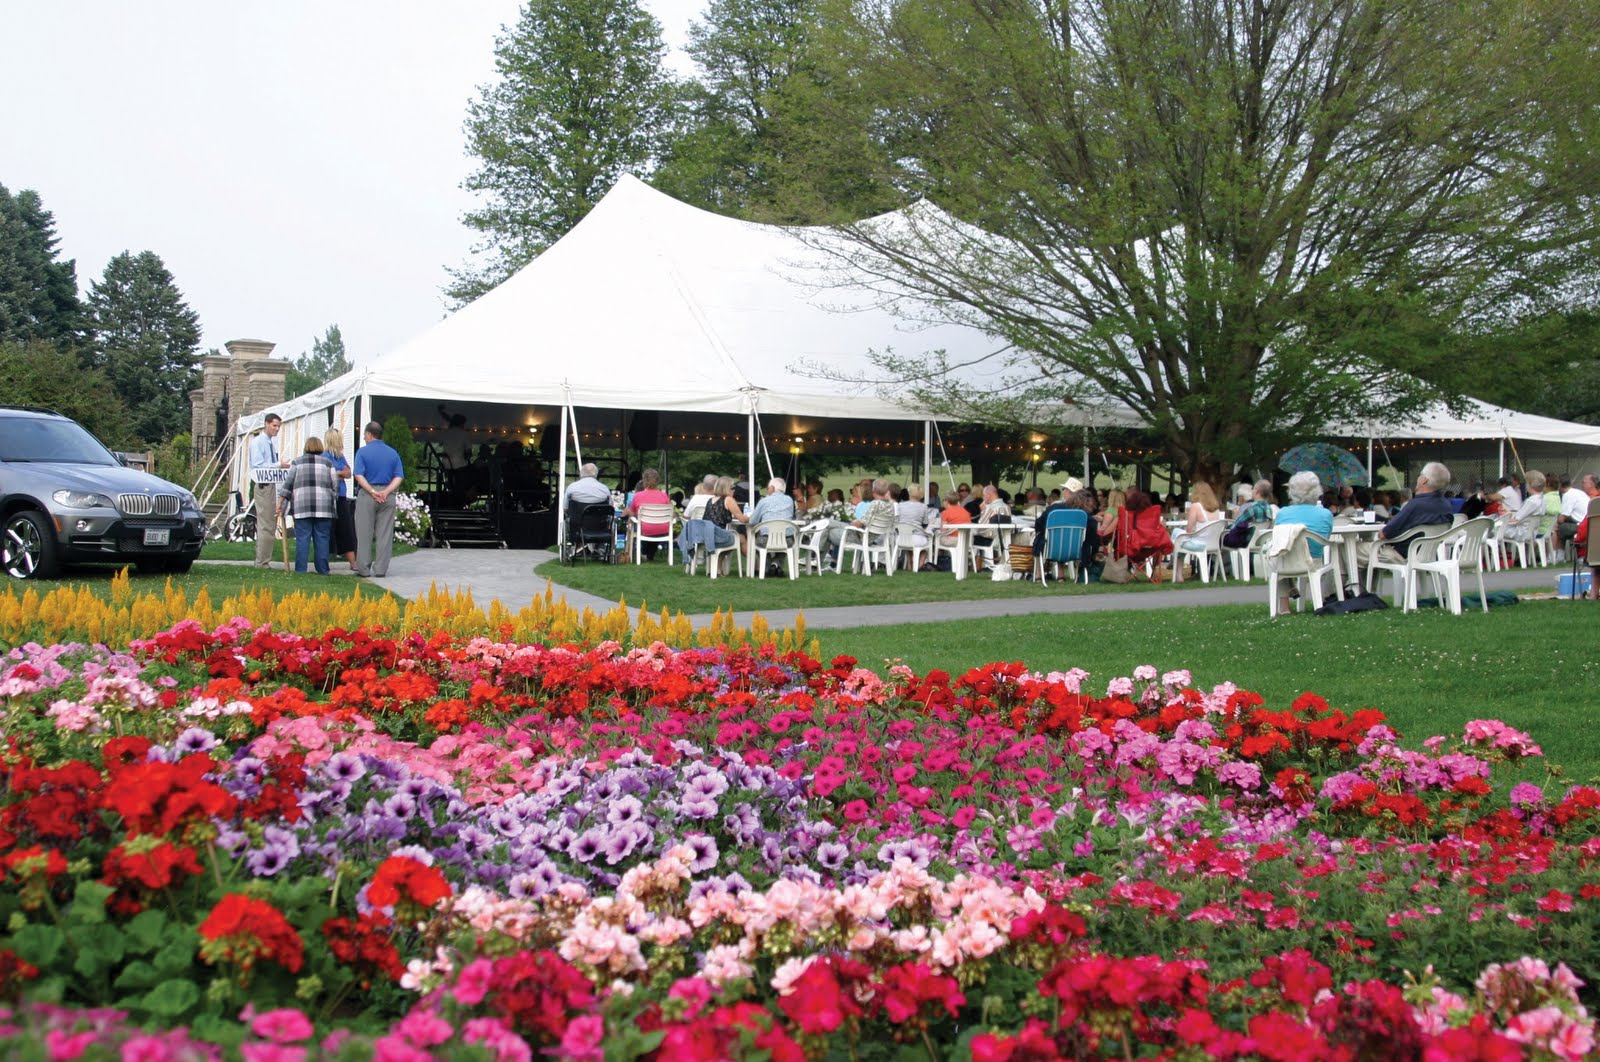 Superb If There Is Ever Any Doubt Whether Spring Has Arrived, Your Fears Can Be  Quelled At The RBG. I Always Love Going To Events Throughout The Year At  The RBG As ...